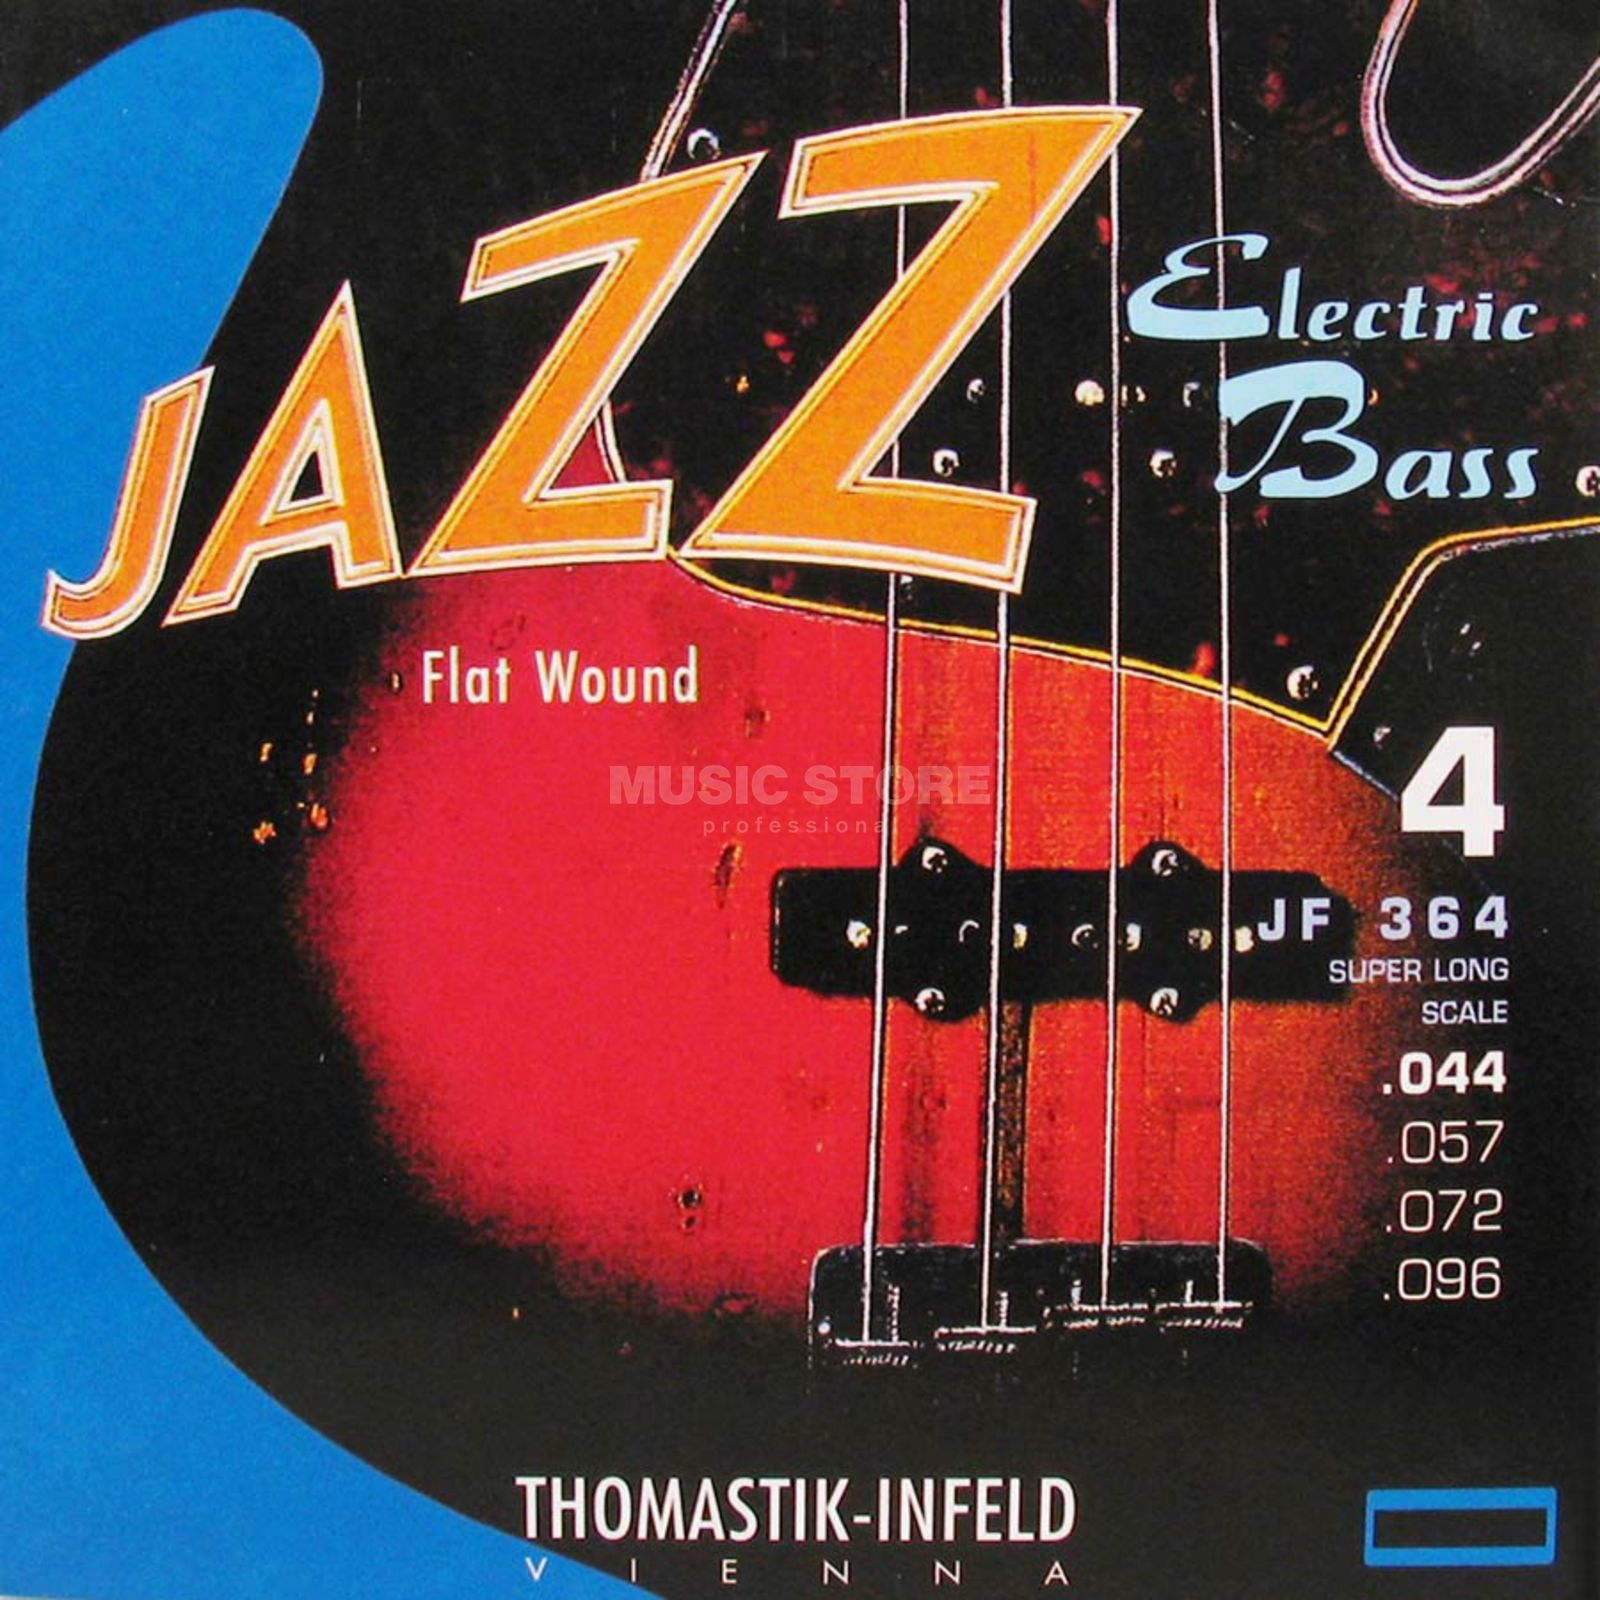 Thomastik 4 Bass Strings JF 364 44-96 Nickel Flat Wound Immagine prodotto